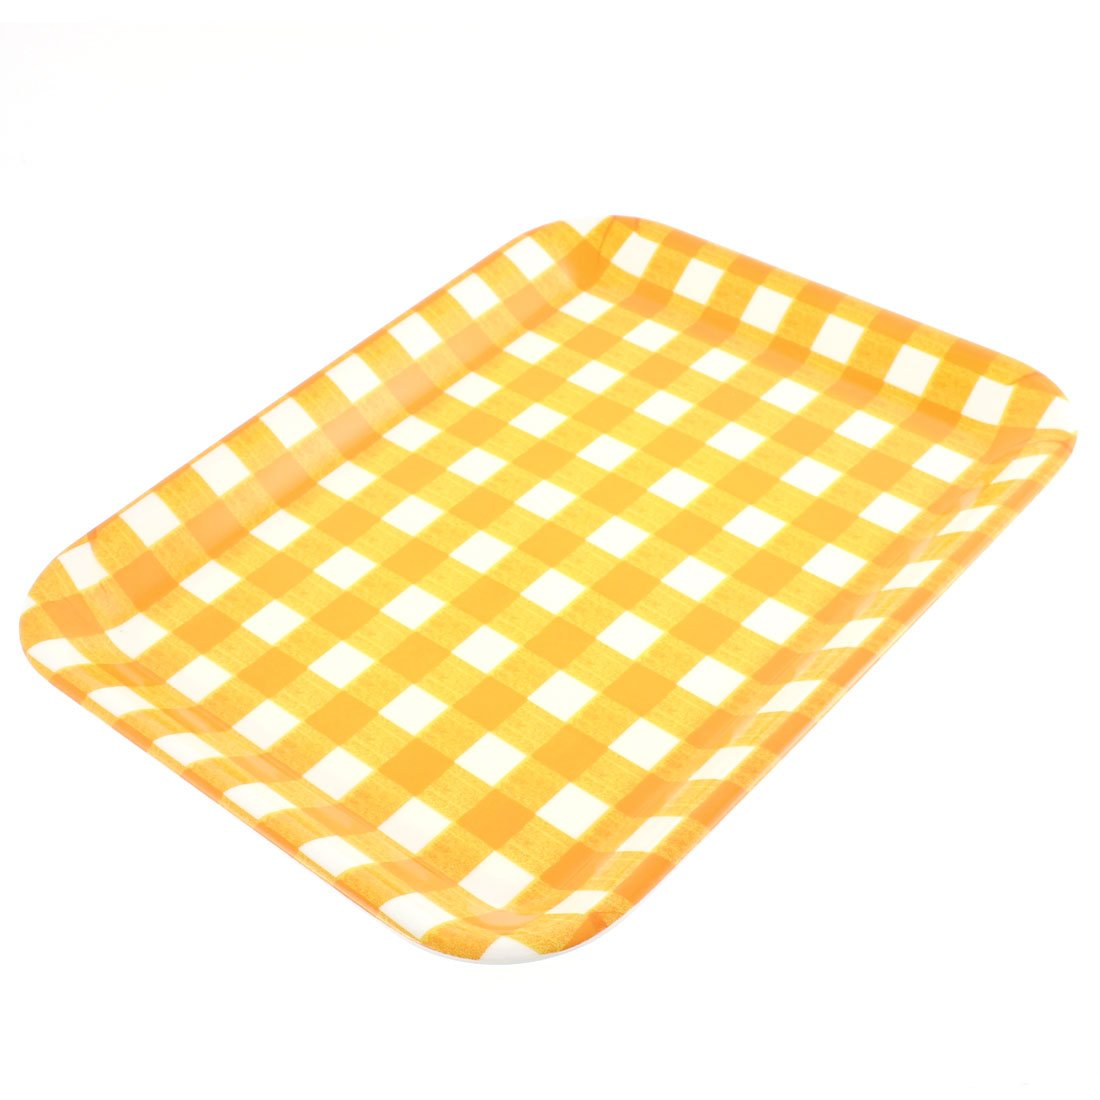 uxcell Hotel Rectangle Shaped Food Cake Serving Tray 13 Inch Length